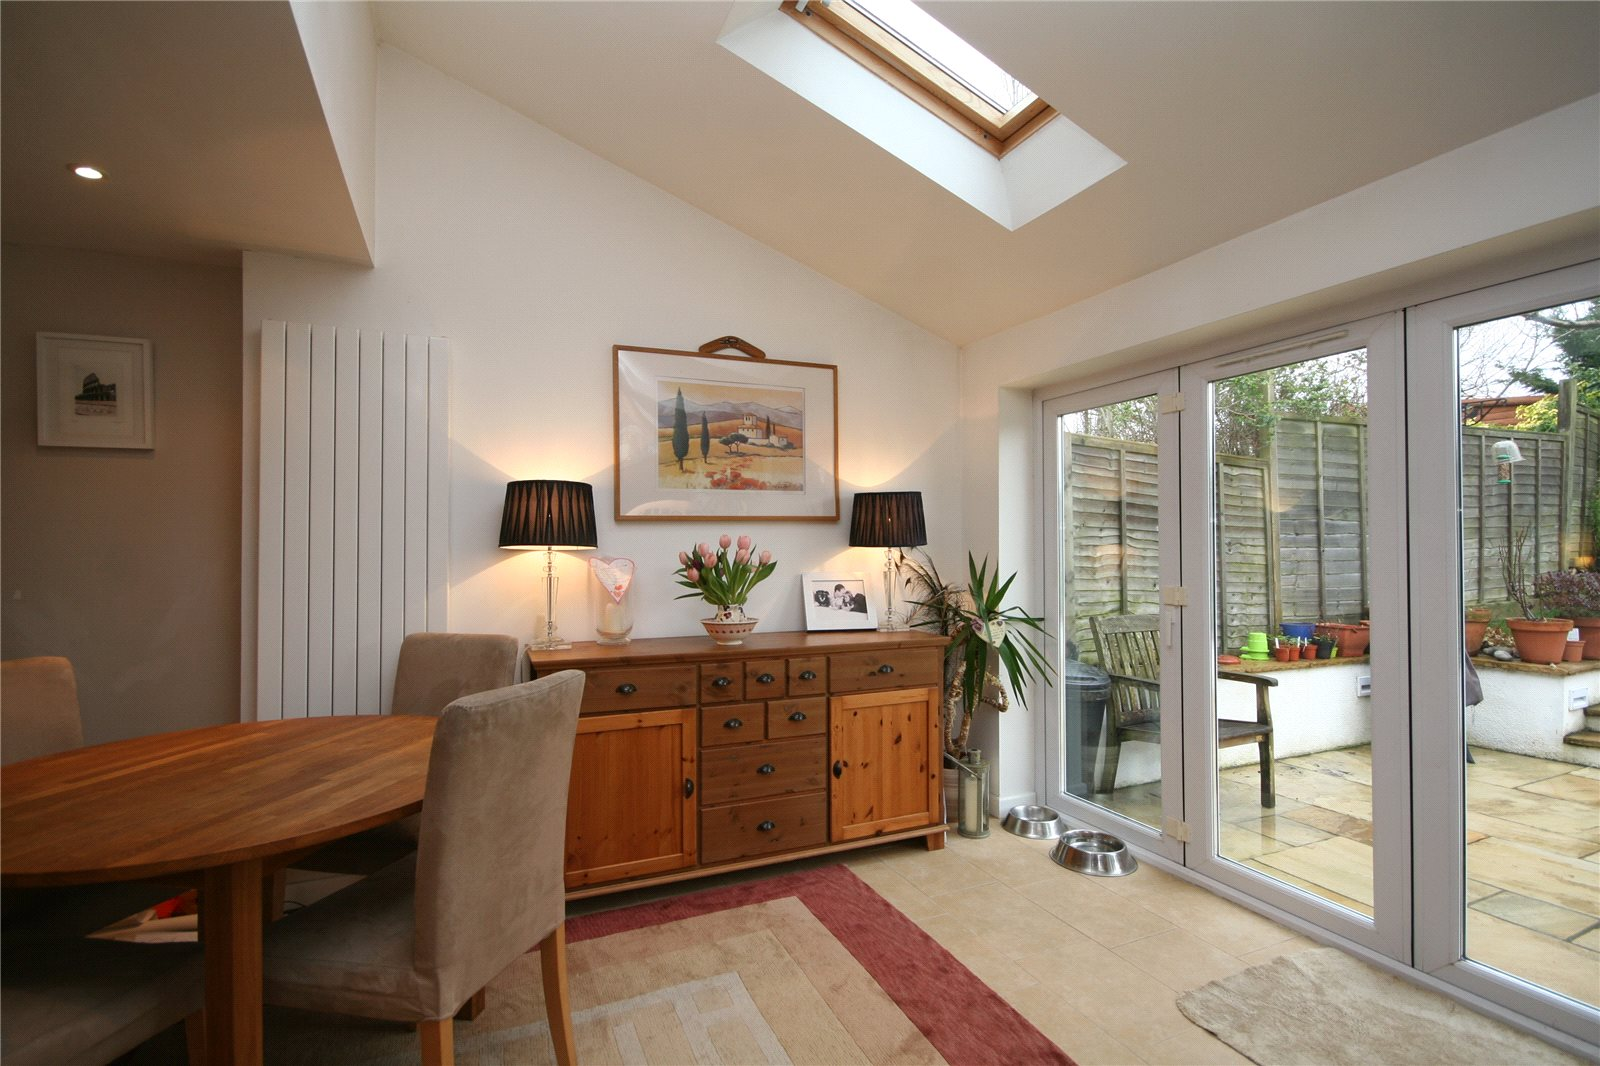 CJ Hole Cheltenham 3 bedroom House for sale in Hollis Gardens ...